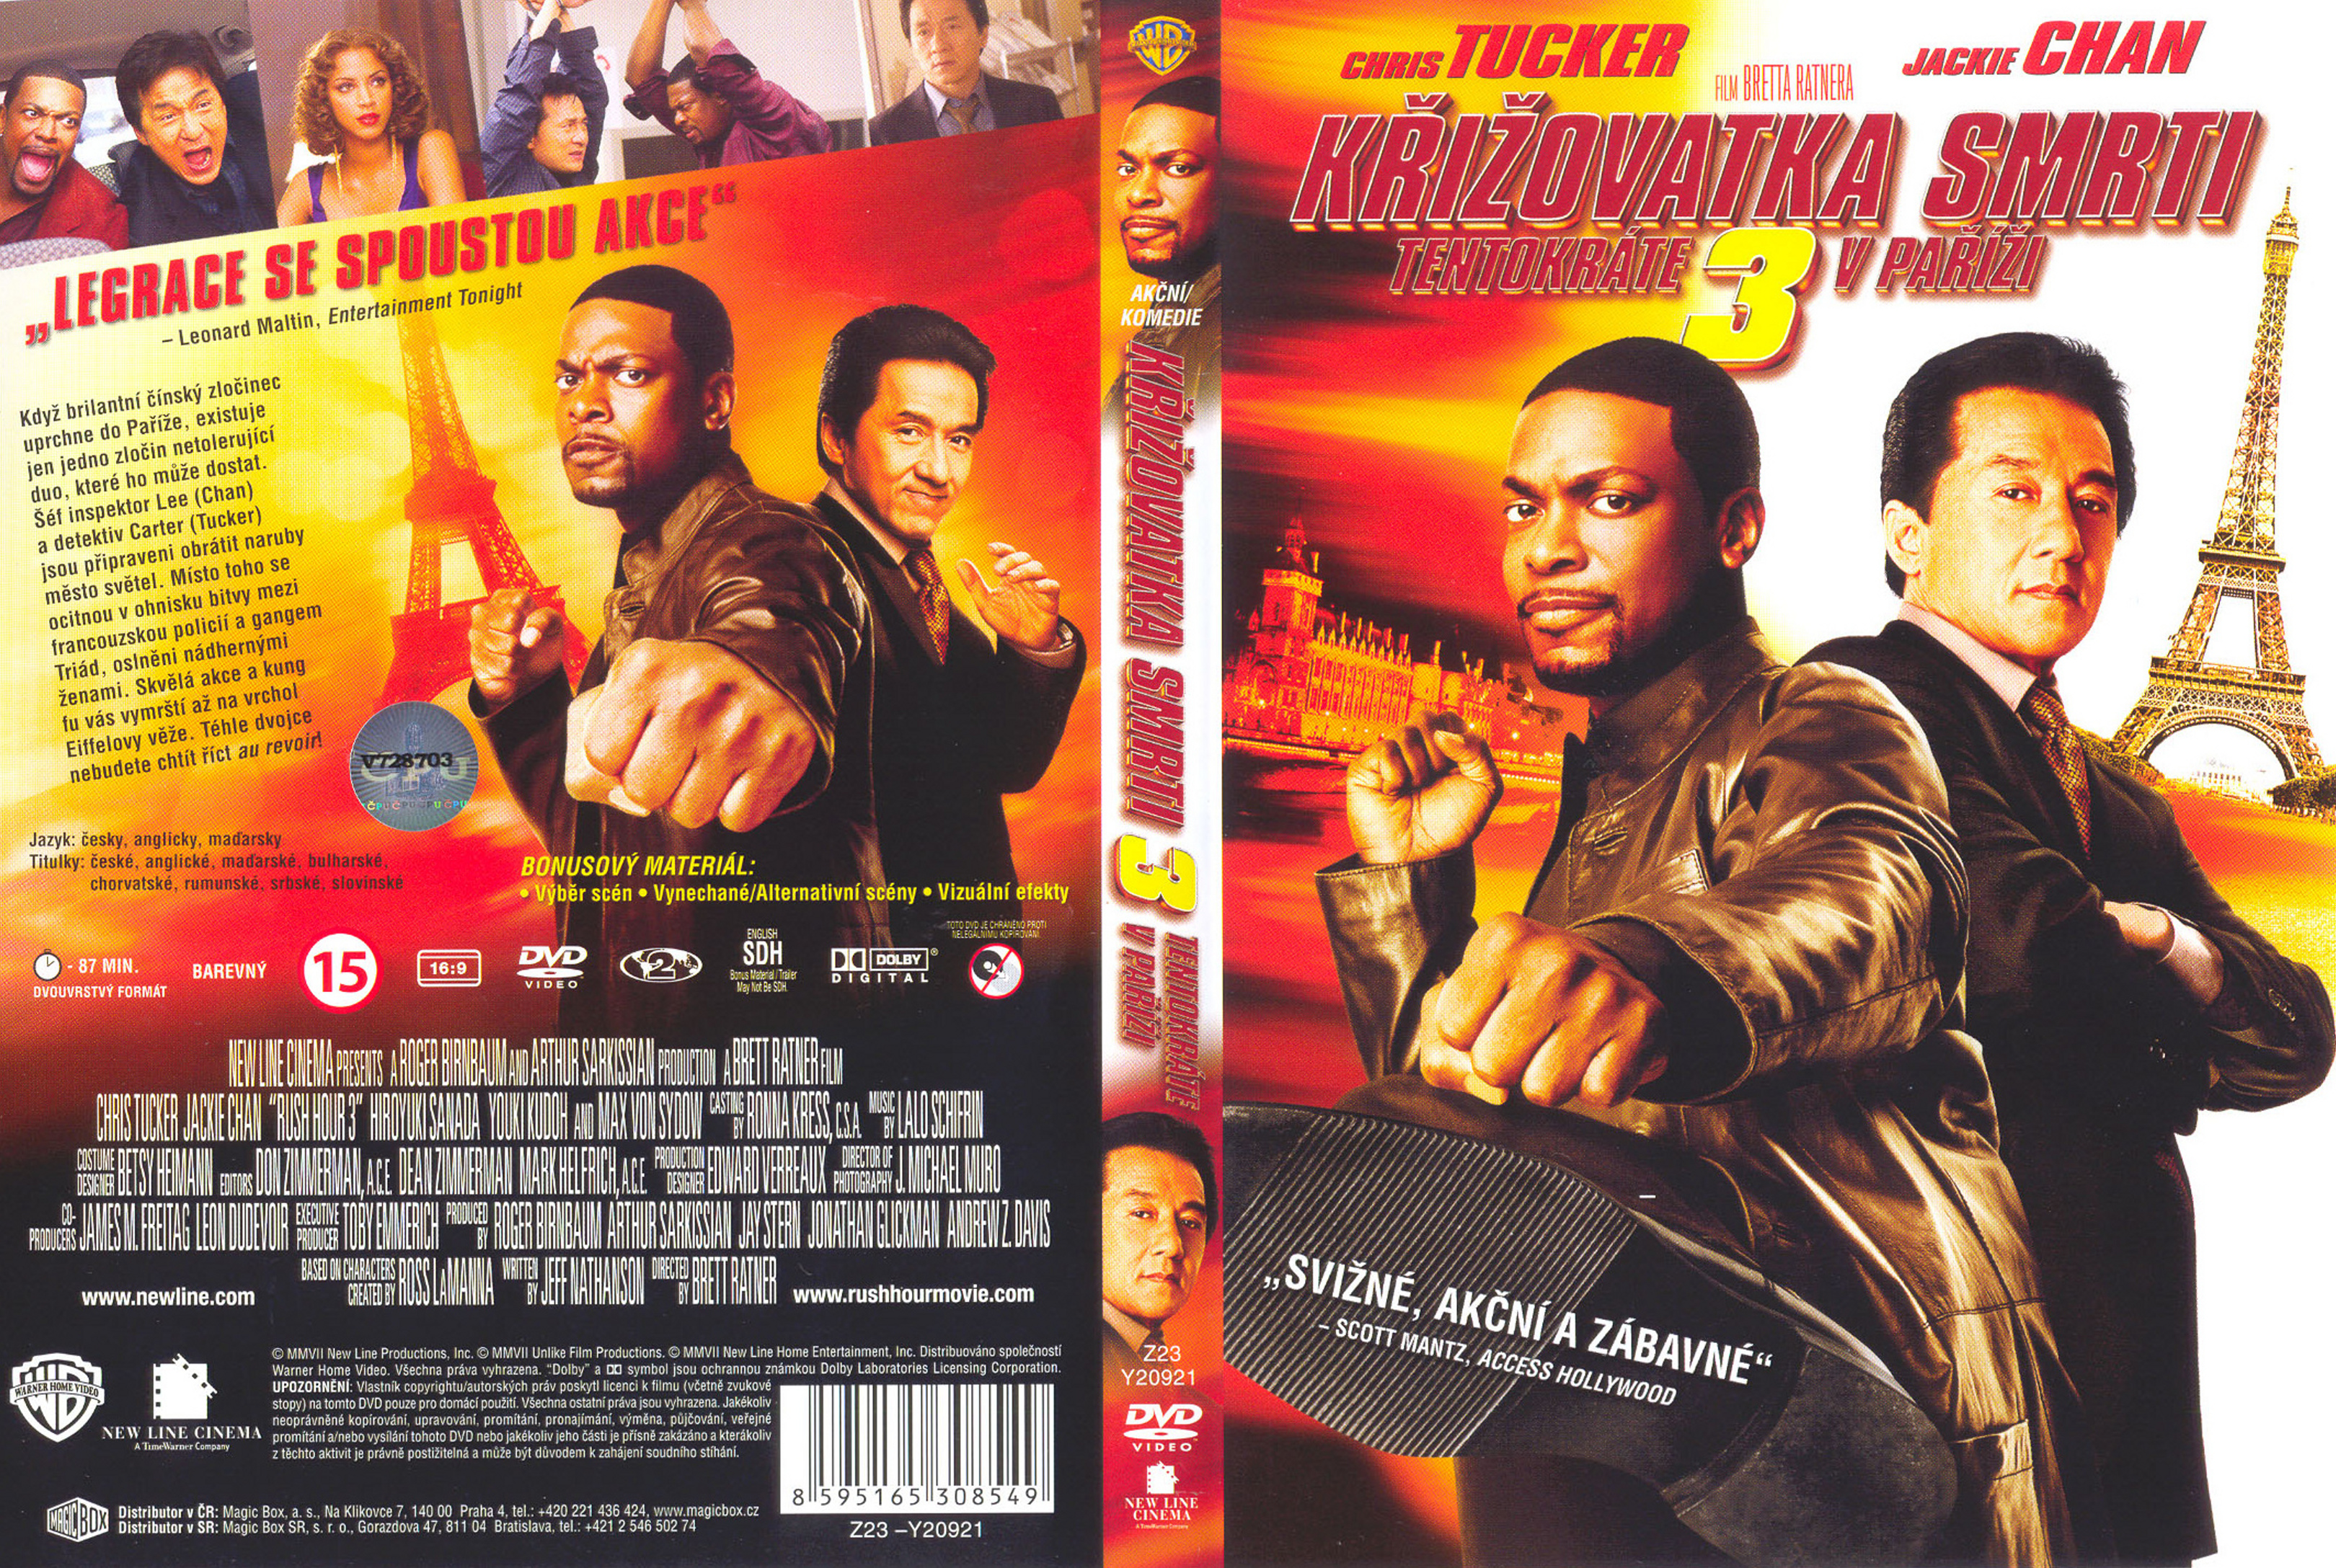 Covers Box Sk Rush Hour 3 2007 High Quality Dvd Blueray Movie